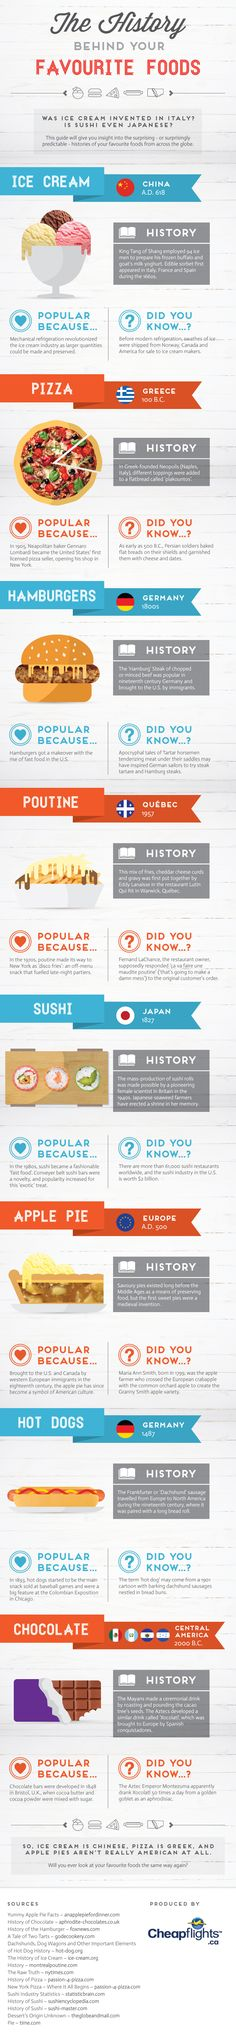 The history behind your favorite foods.